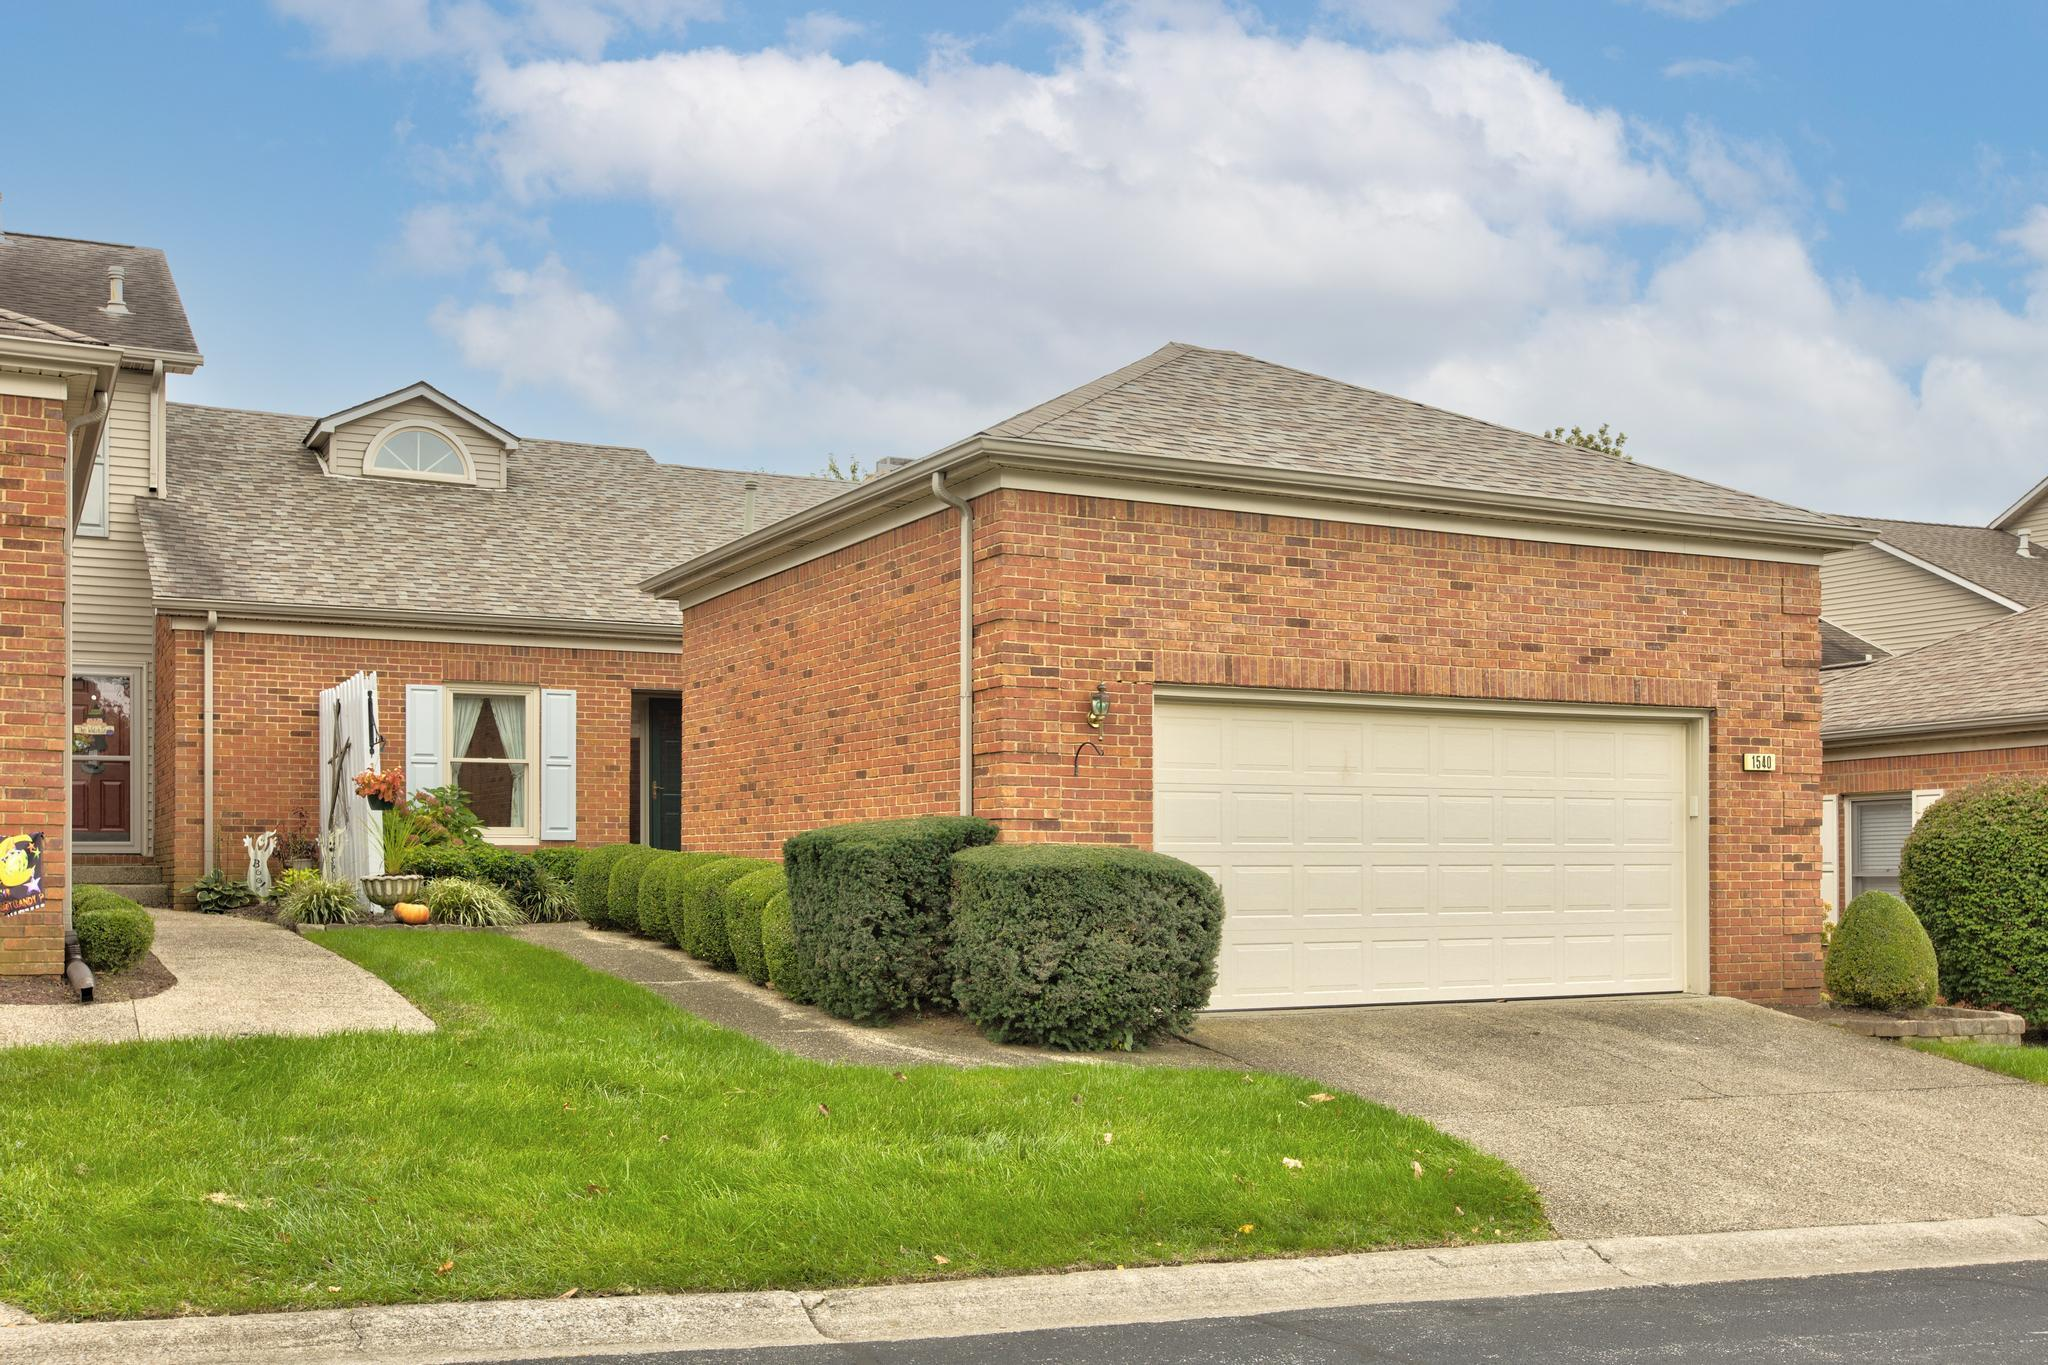 1540 Player Drive, Lexington, Kentucky 40511, 2 Bedrooms Bedrooms, ,2 BathroomsBathrooms,Residential,For Sale,Player,20122966